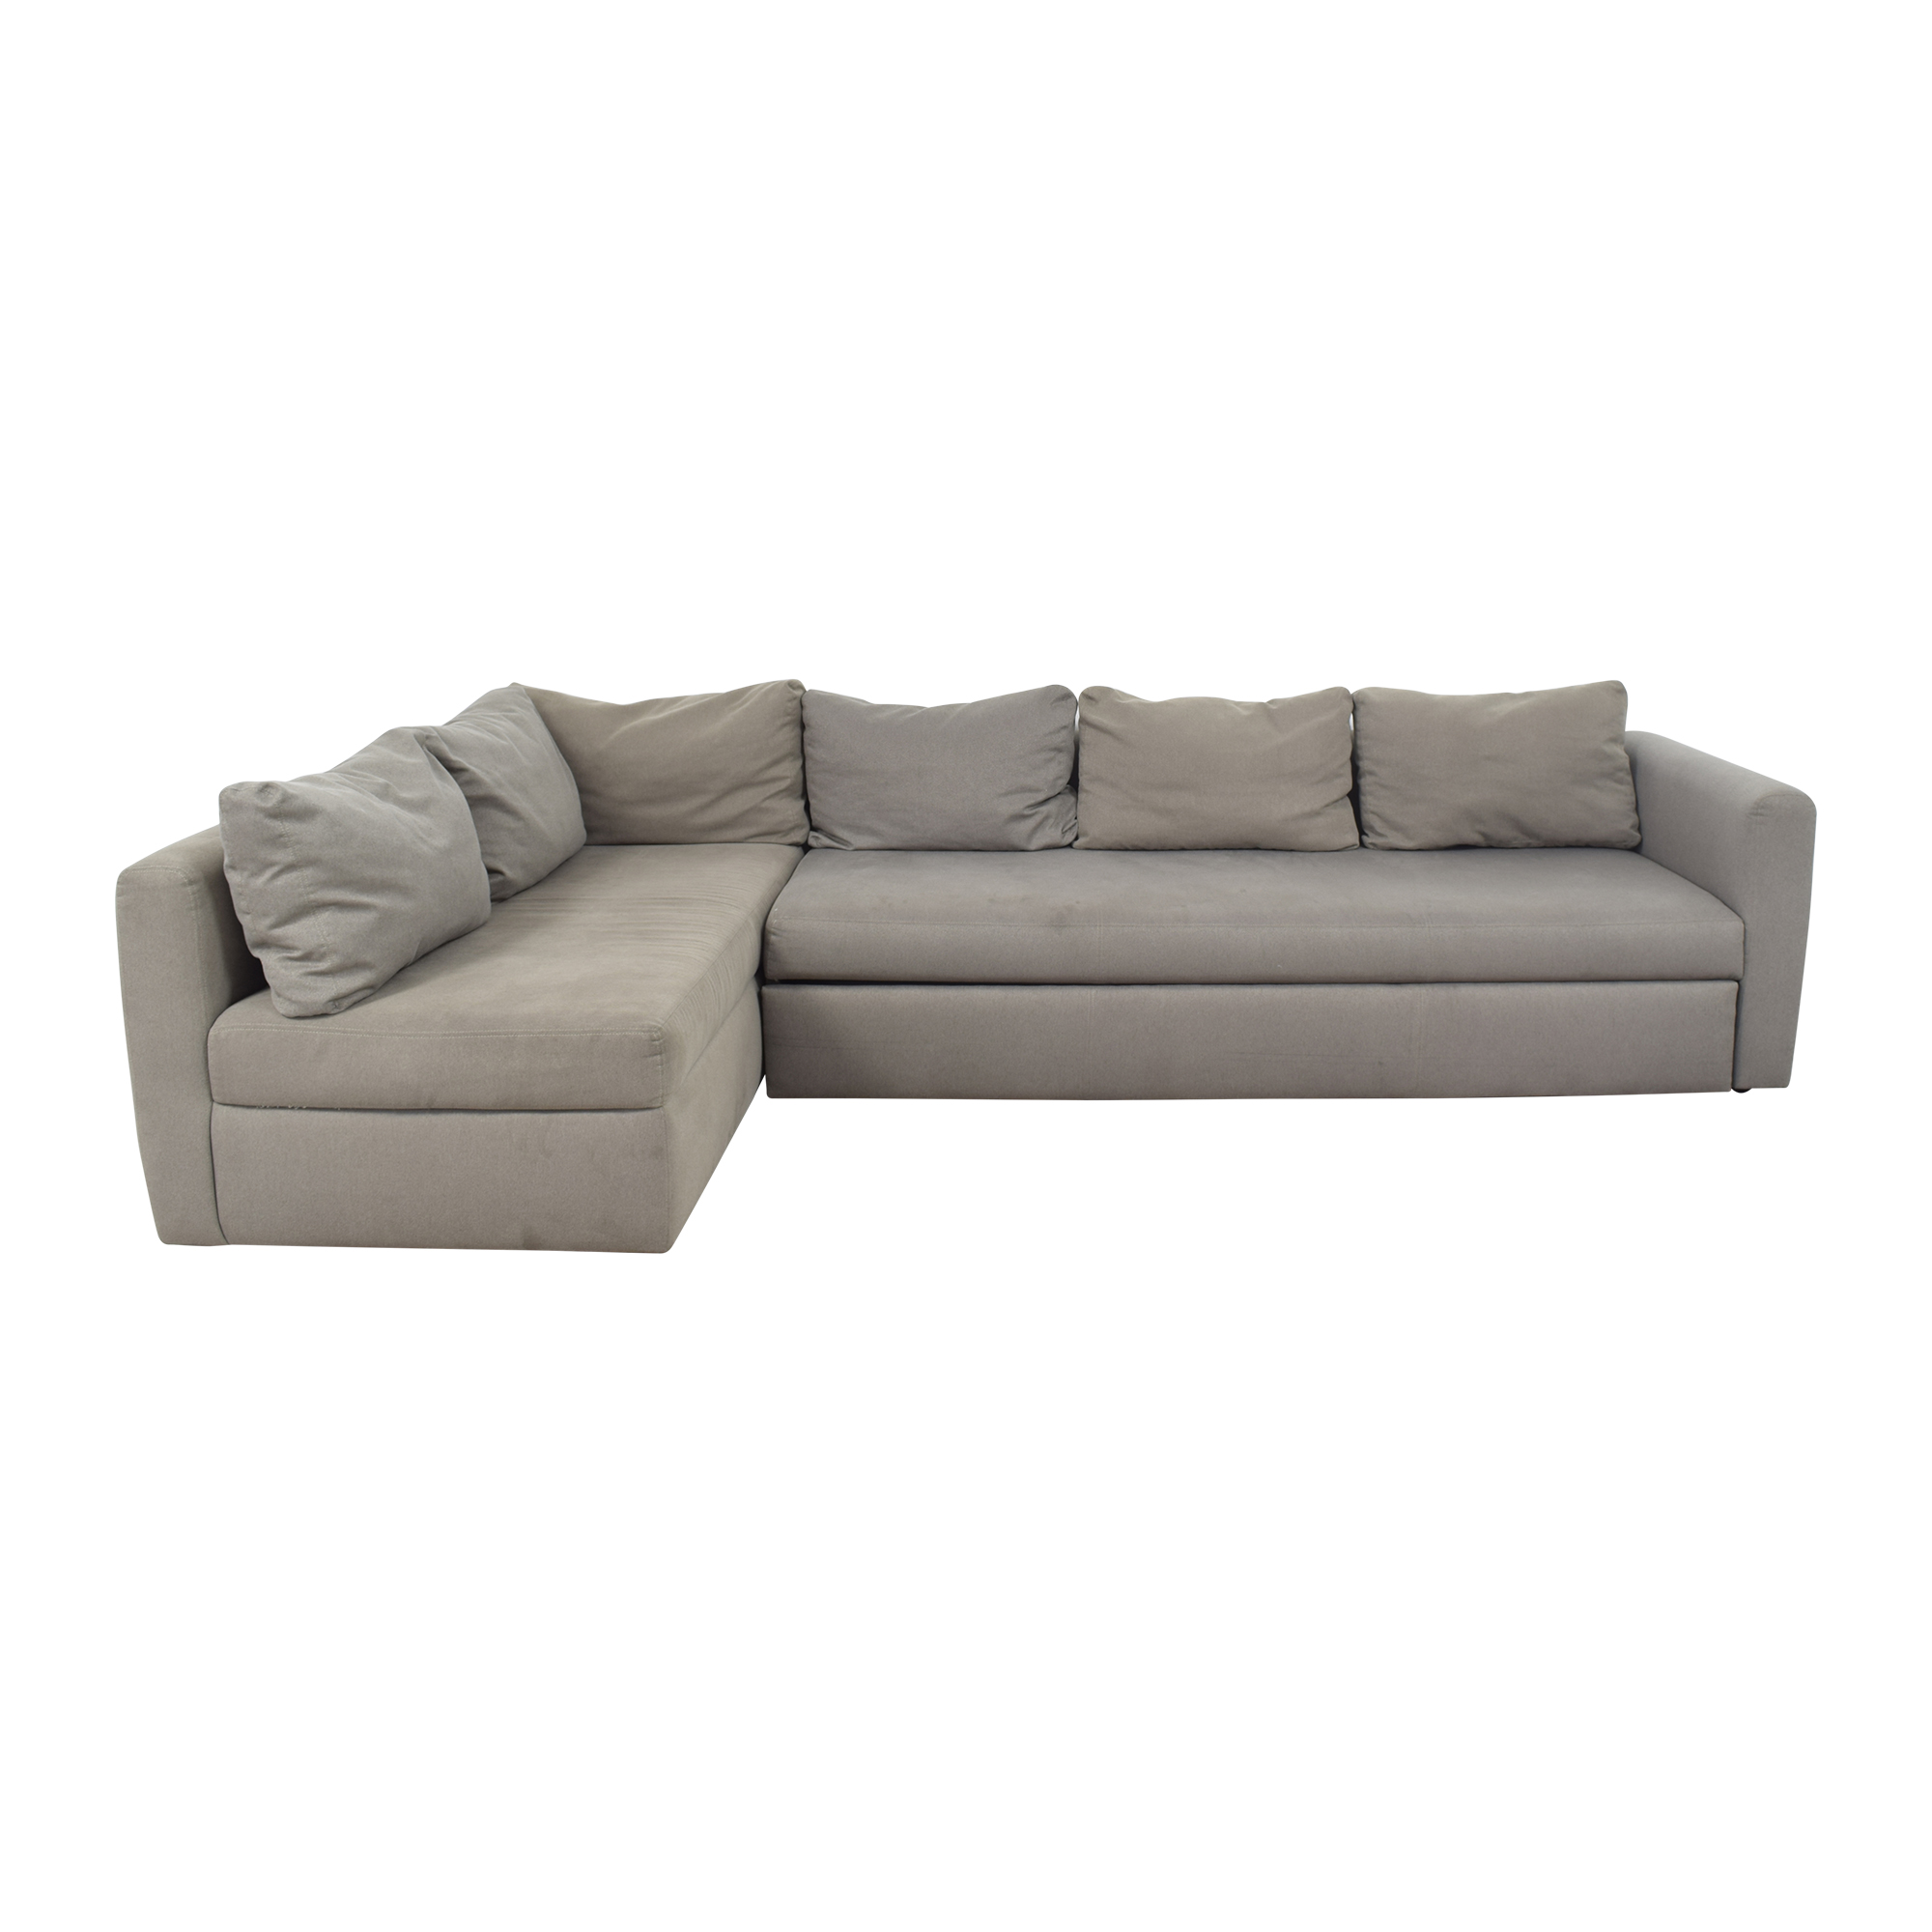 Room & Board Room & Board Oxford Pop Up Platform Sleeper Sofa with Storage Chaise used